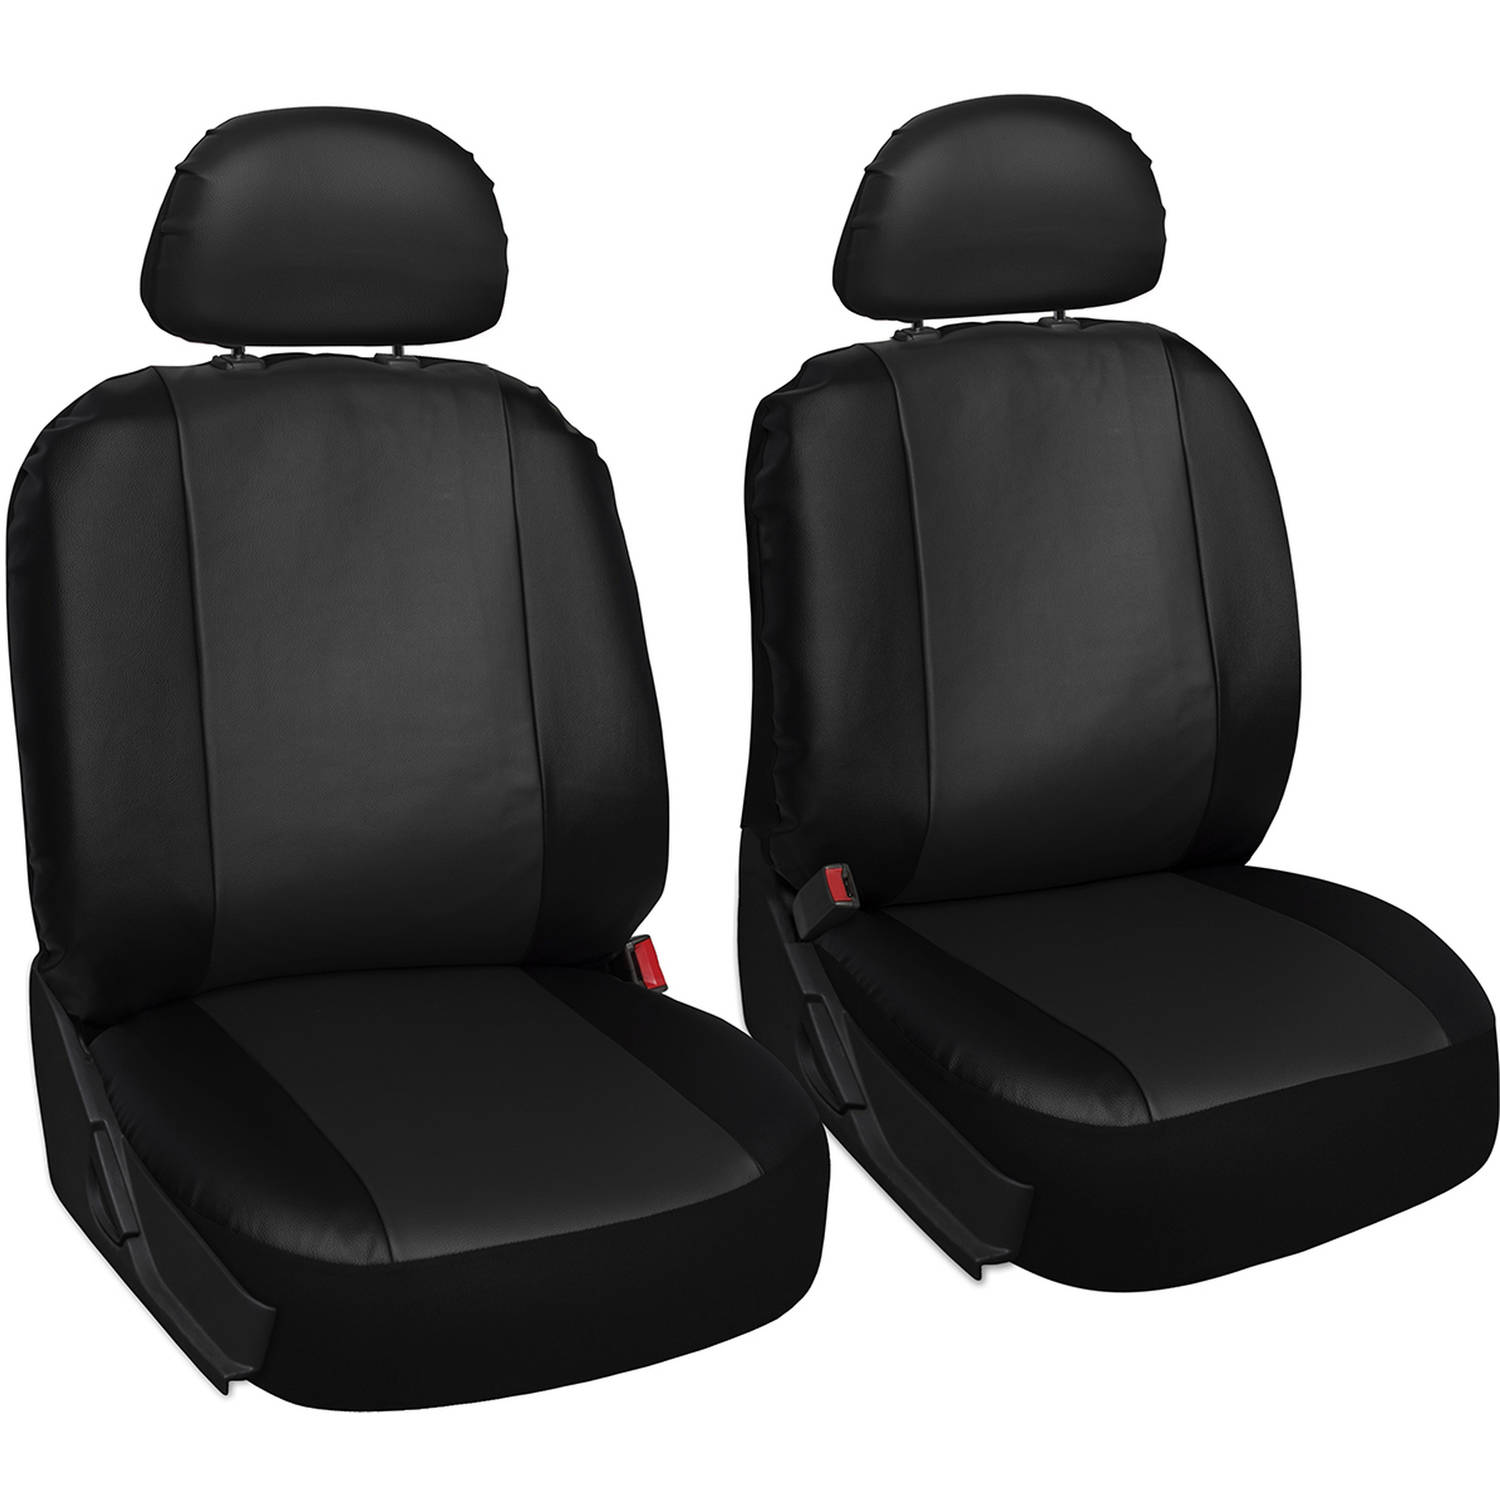 Oxgord Faux Leather Bucket Seat Cover Set for Car/Truck/Van/SUV, Airbag Compatible